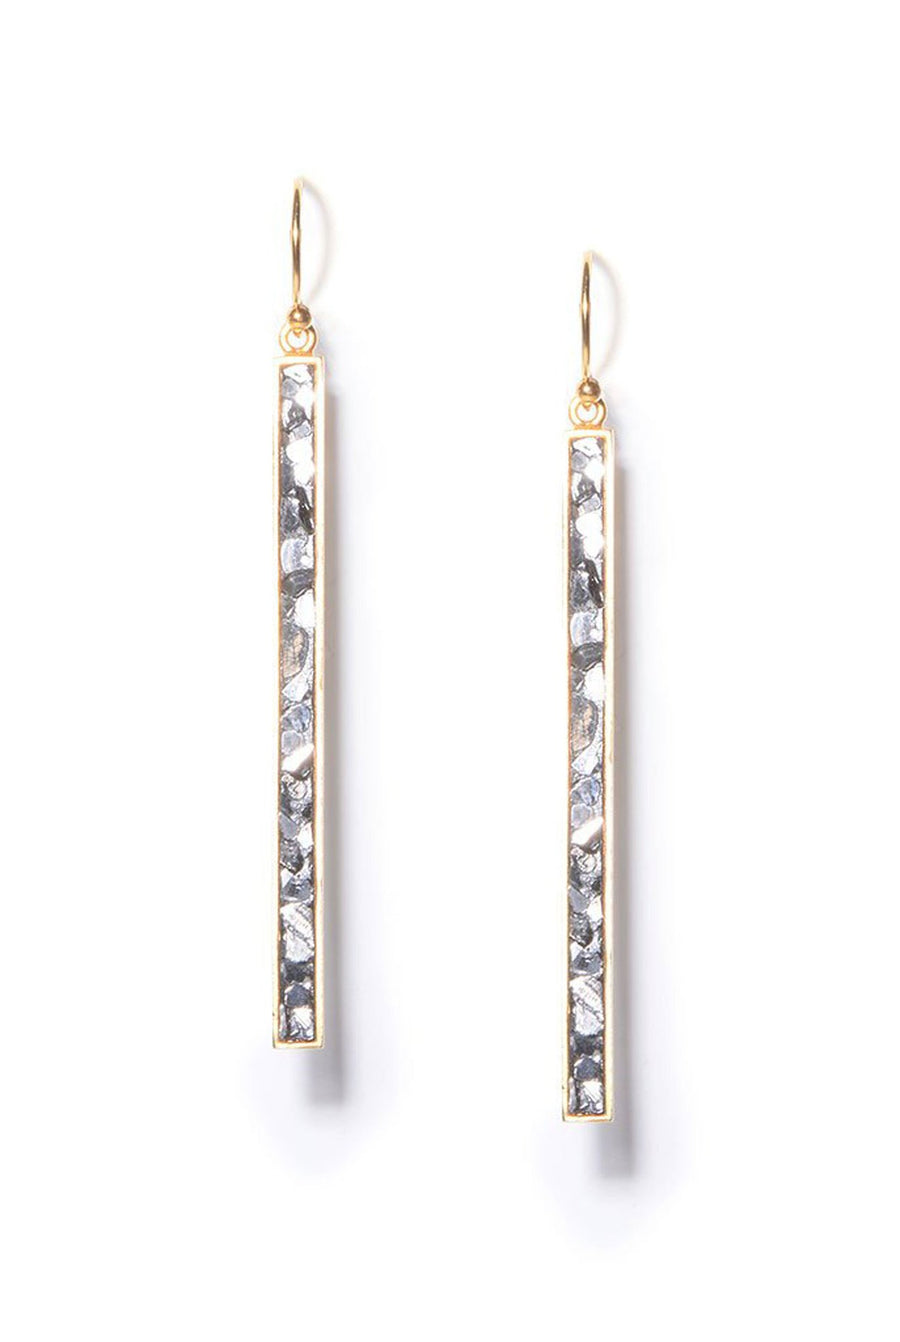 Shana Gulati Miladi Earrings